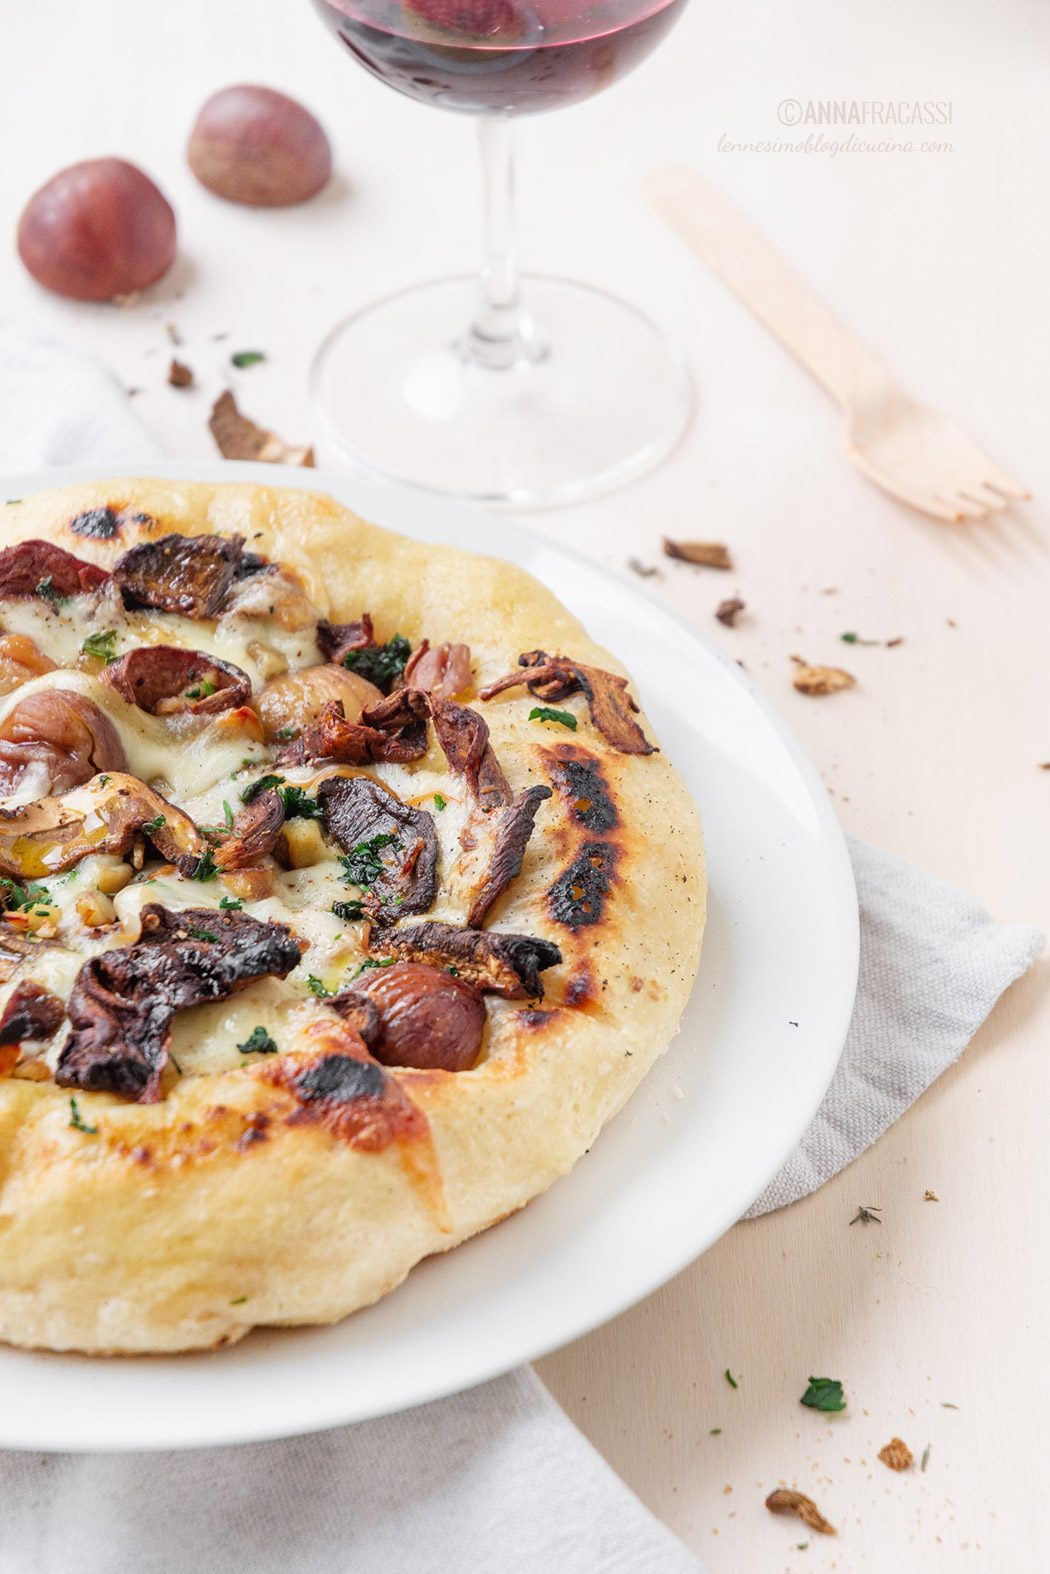 Pizza with porcini mushrooms, chestnuts and scamorza